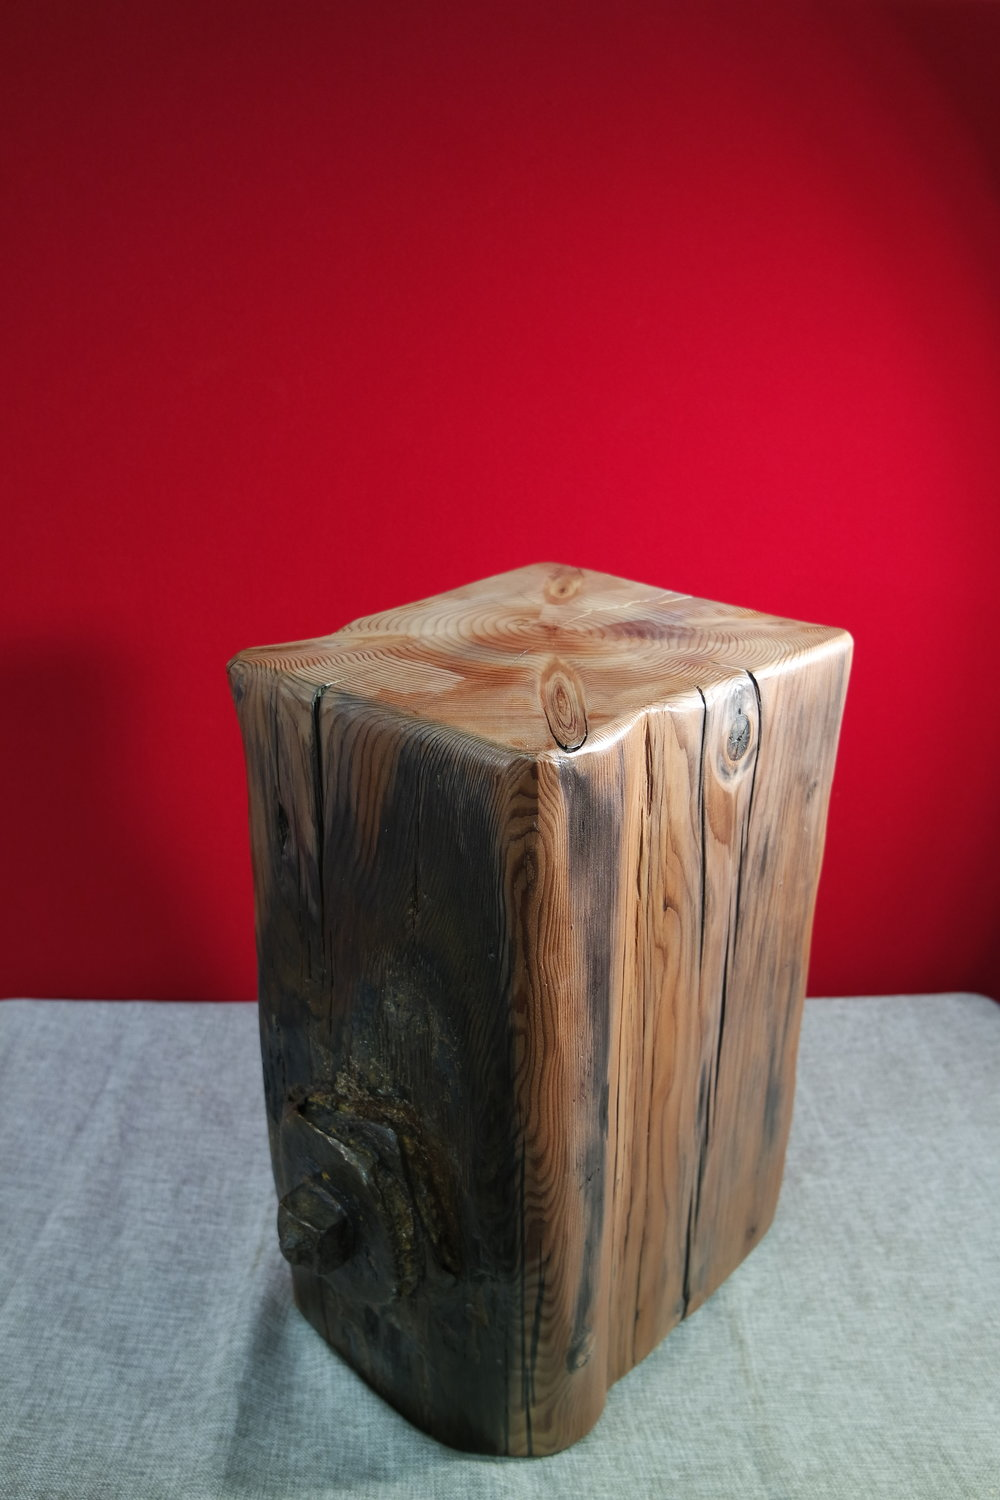 Driftwood Stool with Iron Bolt No I (24).JPG